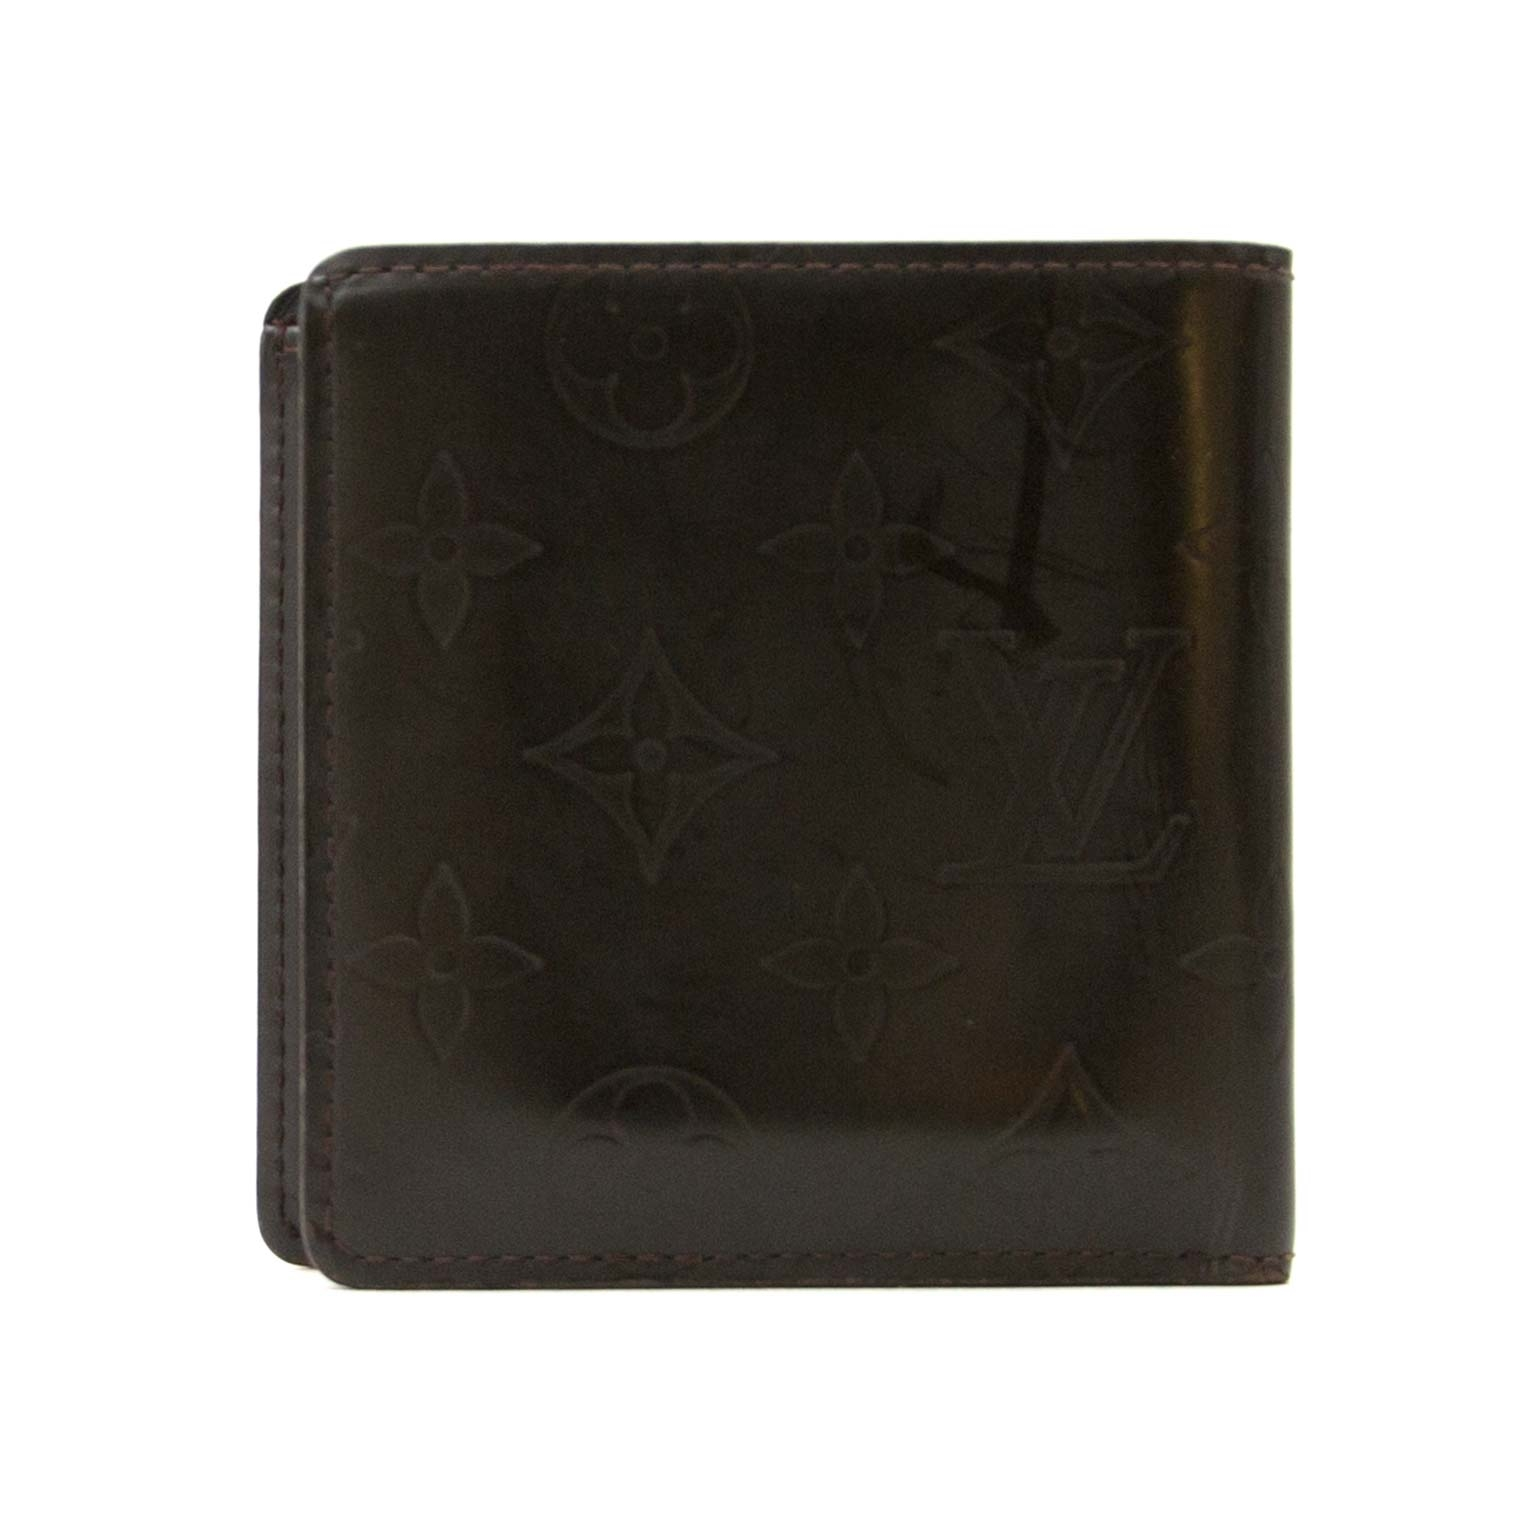 achetez Louis Vuitton Brown Monogram Leather Wallet sur labellov